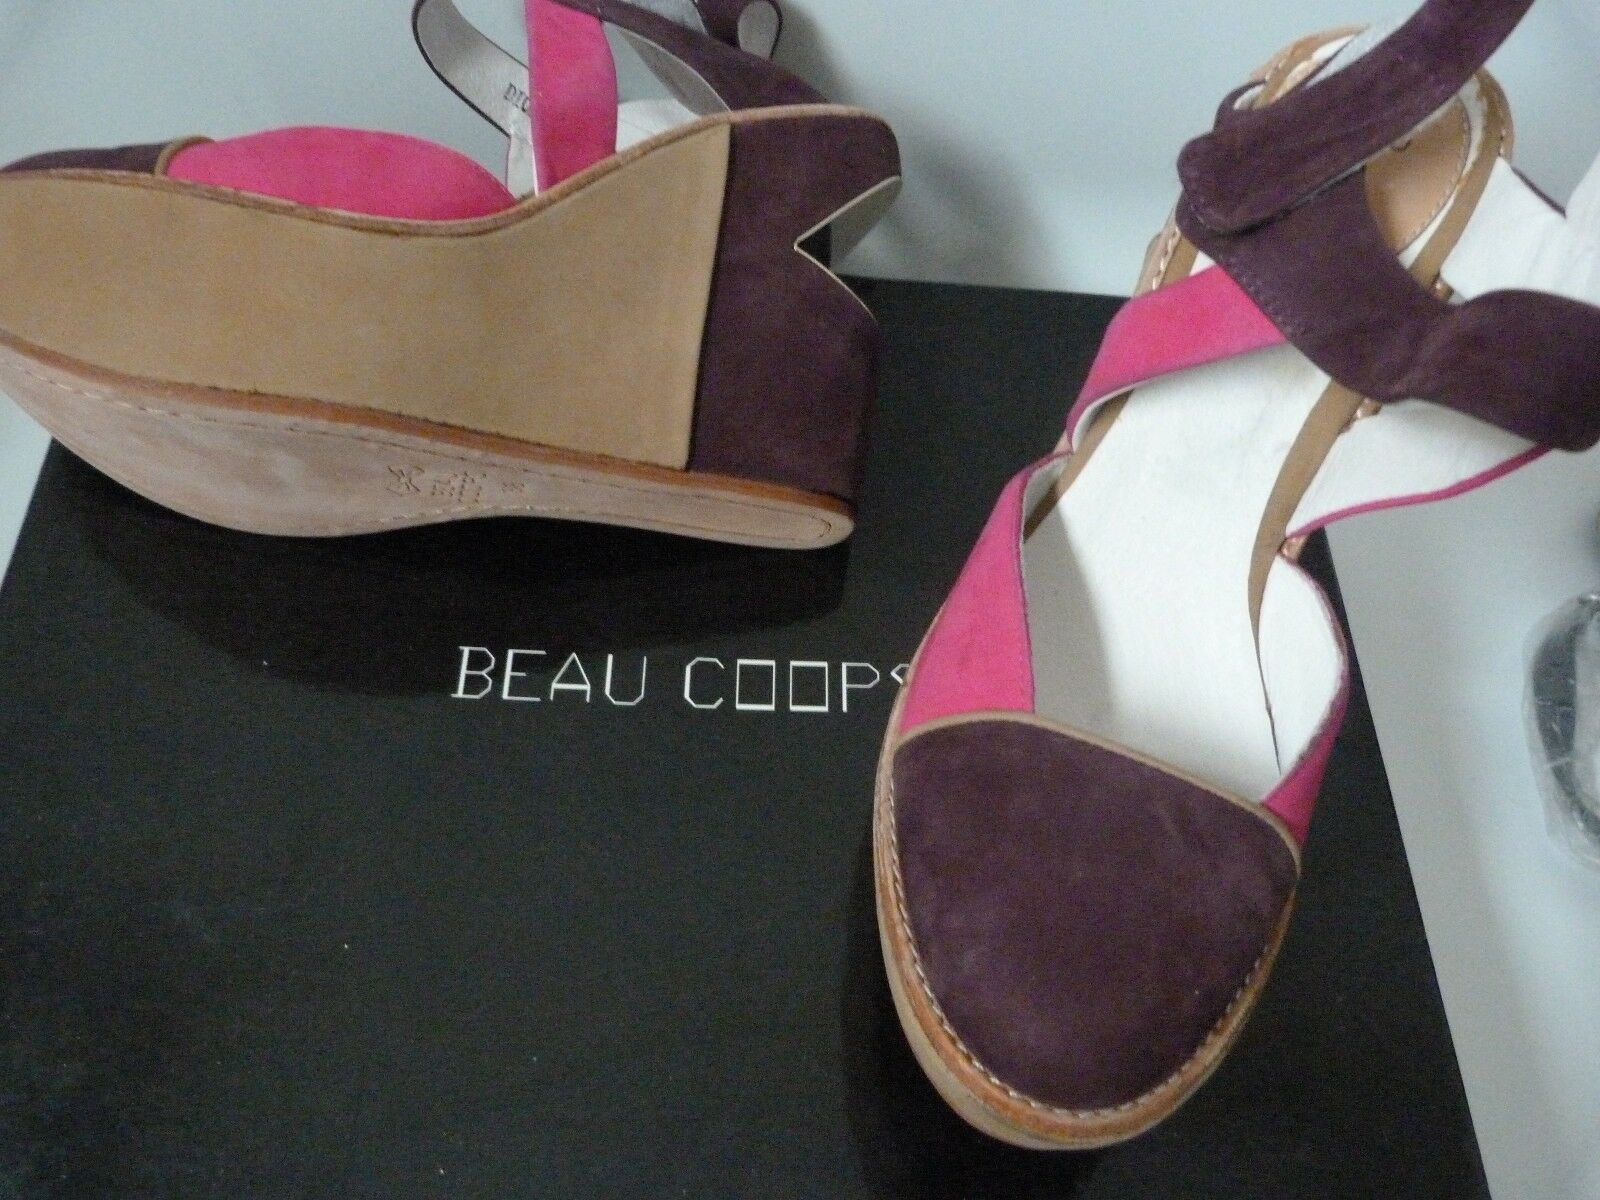 BEAU COOPS Schuhe / DESIGNER / WEDGE HEEL /   / UK 5   EU 38 /  US 7 ... NEW 215af0